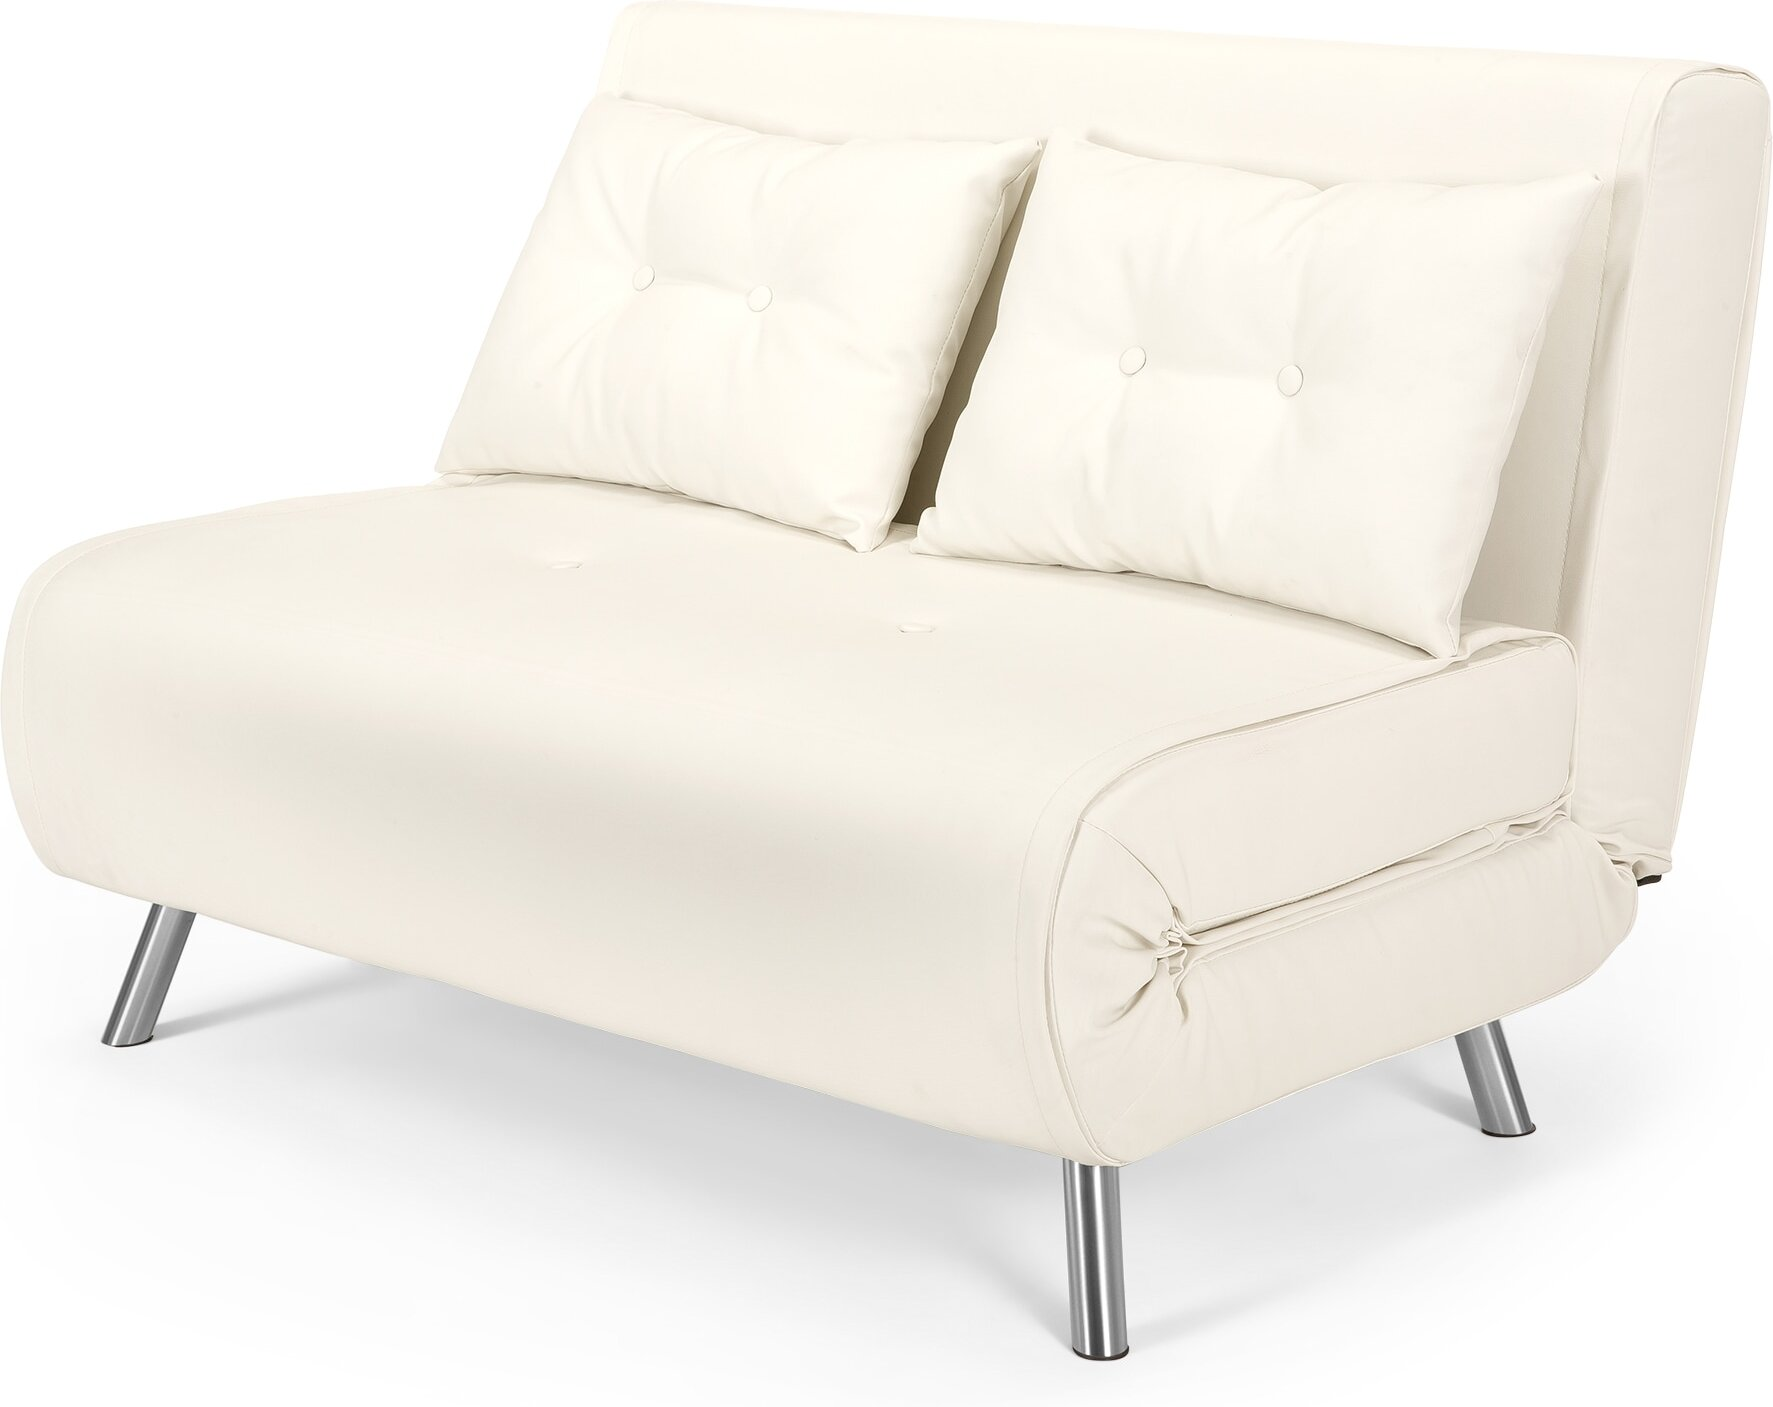 Haru Small Sofa bed Ibis Cream